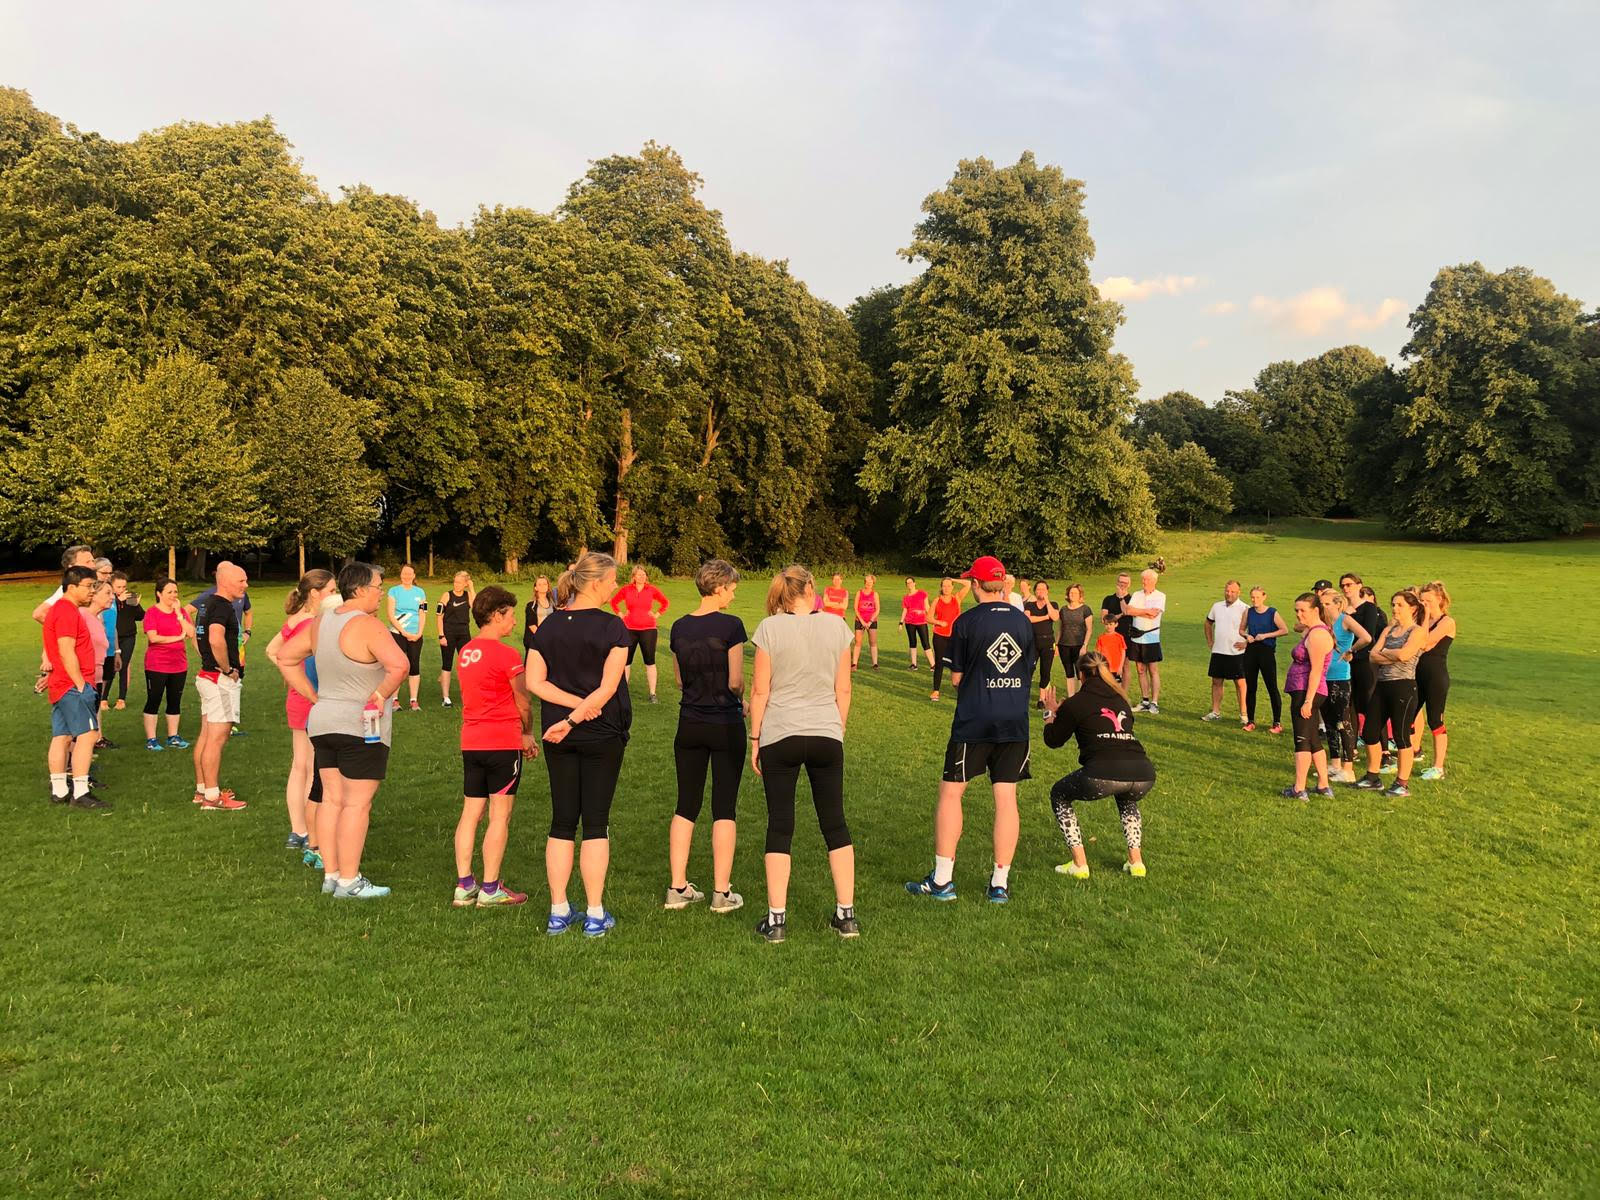 Intersport Run Reigate Run Club – Week 5